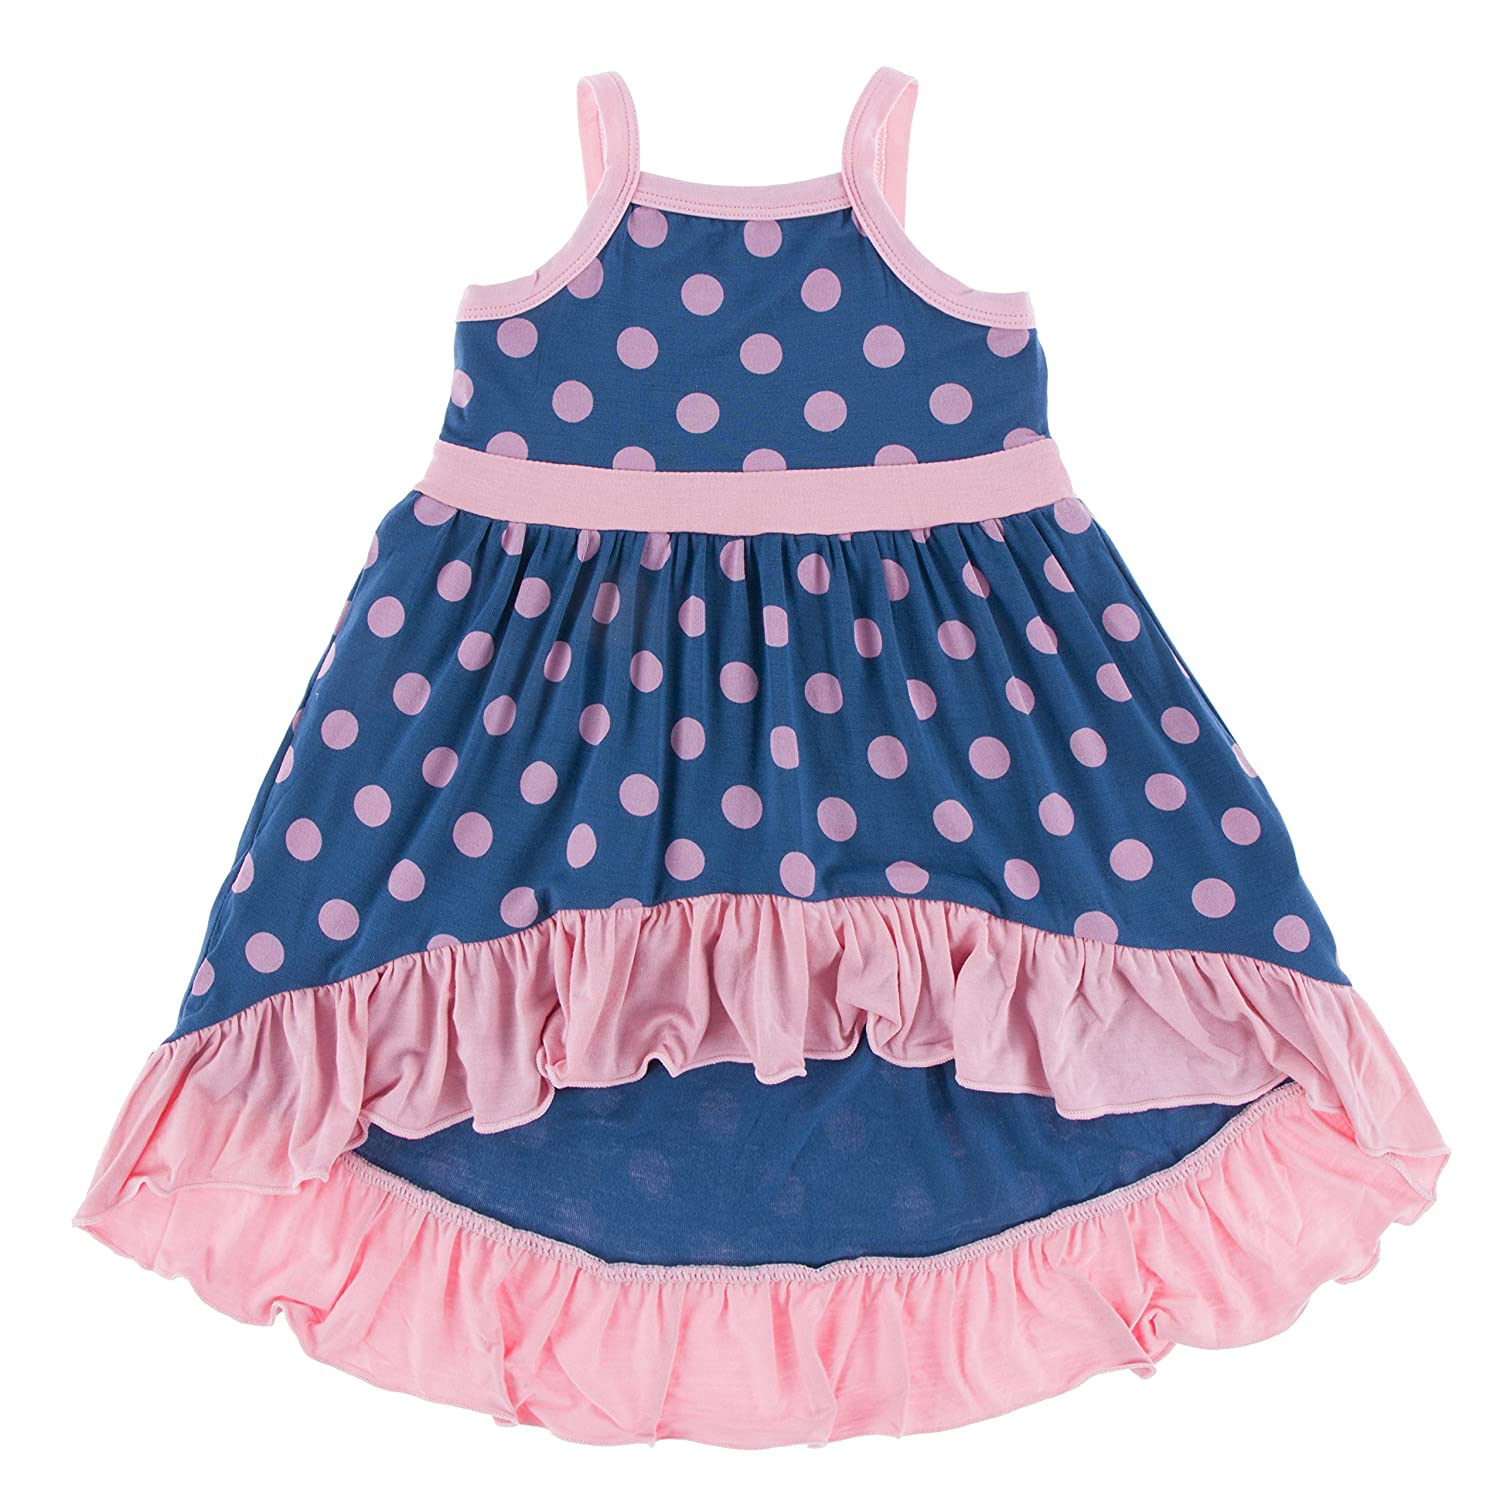 KicKee Pants DRESS ガールズ 3T Twilight Dot B077T9QWWY